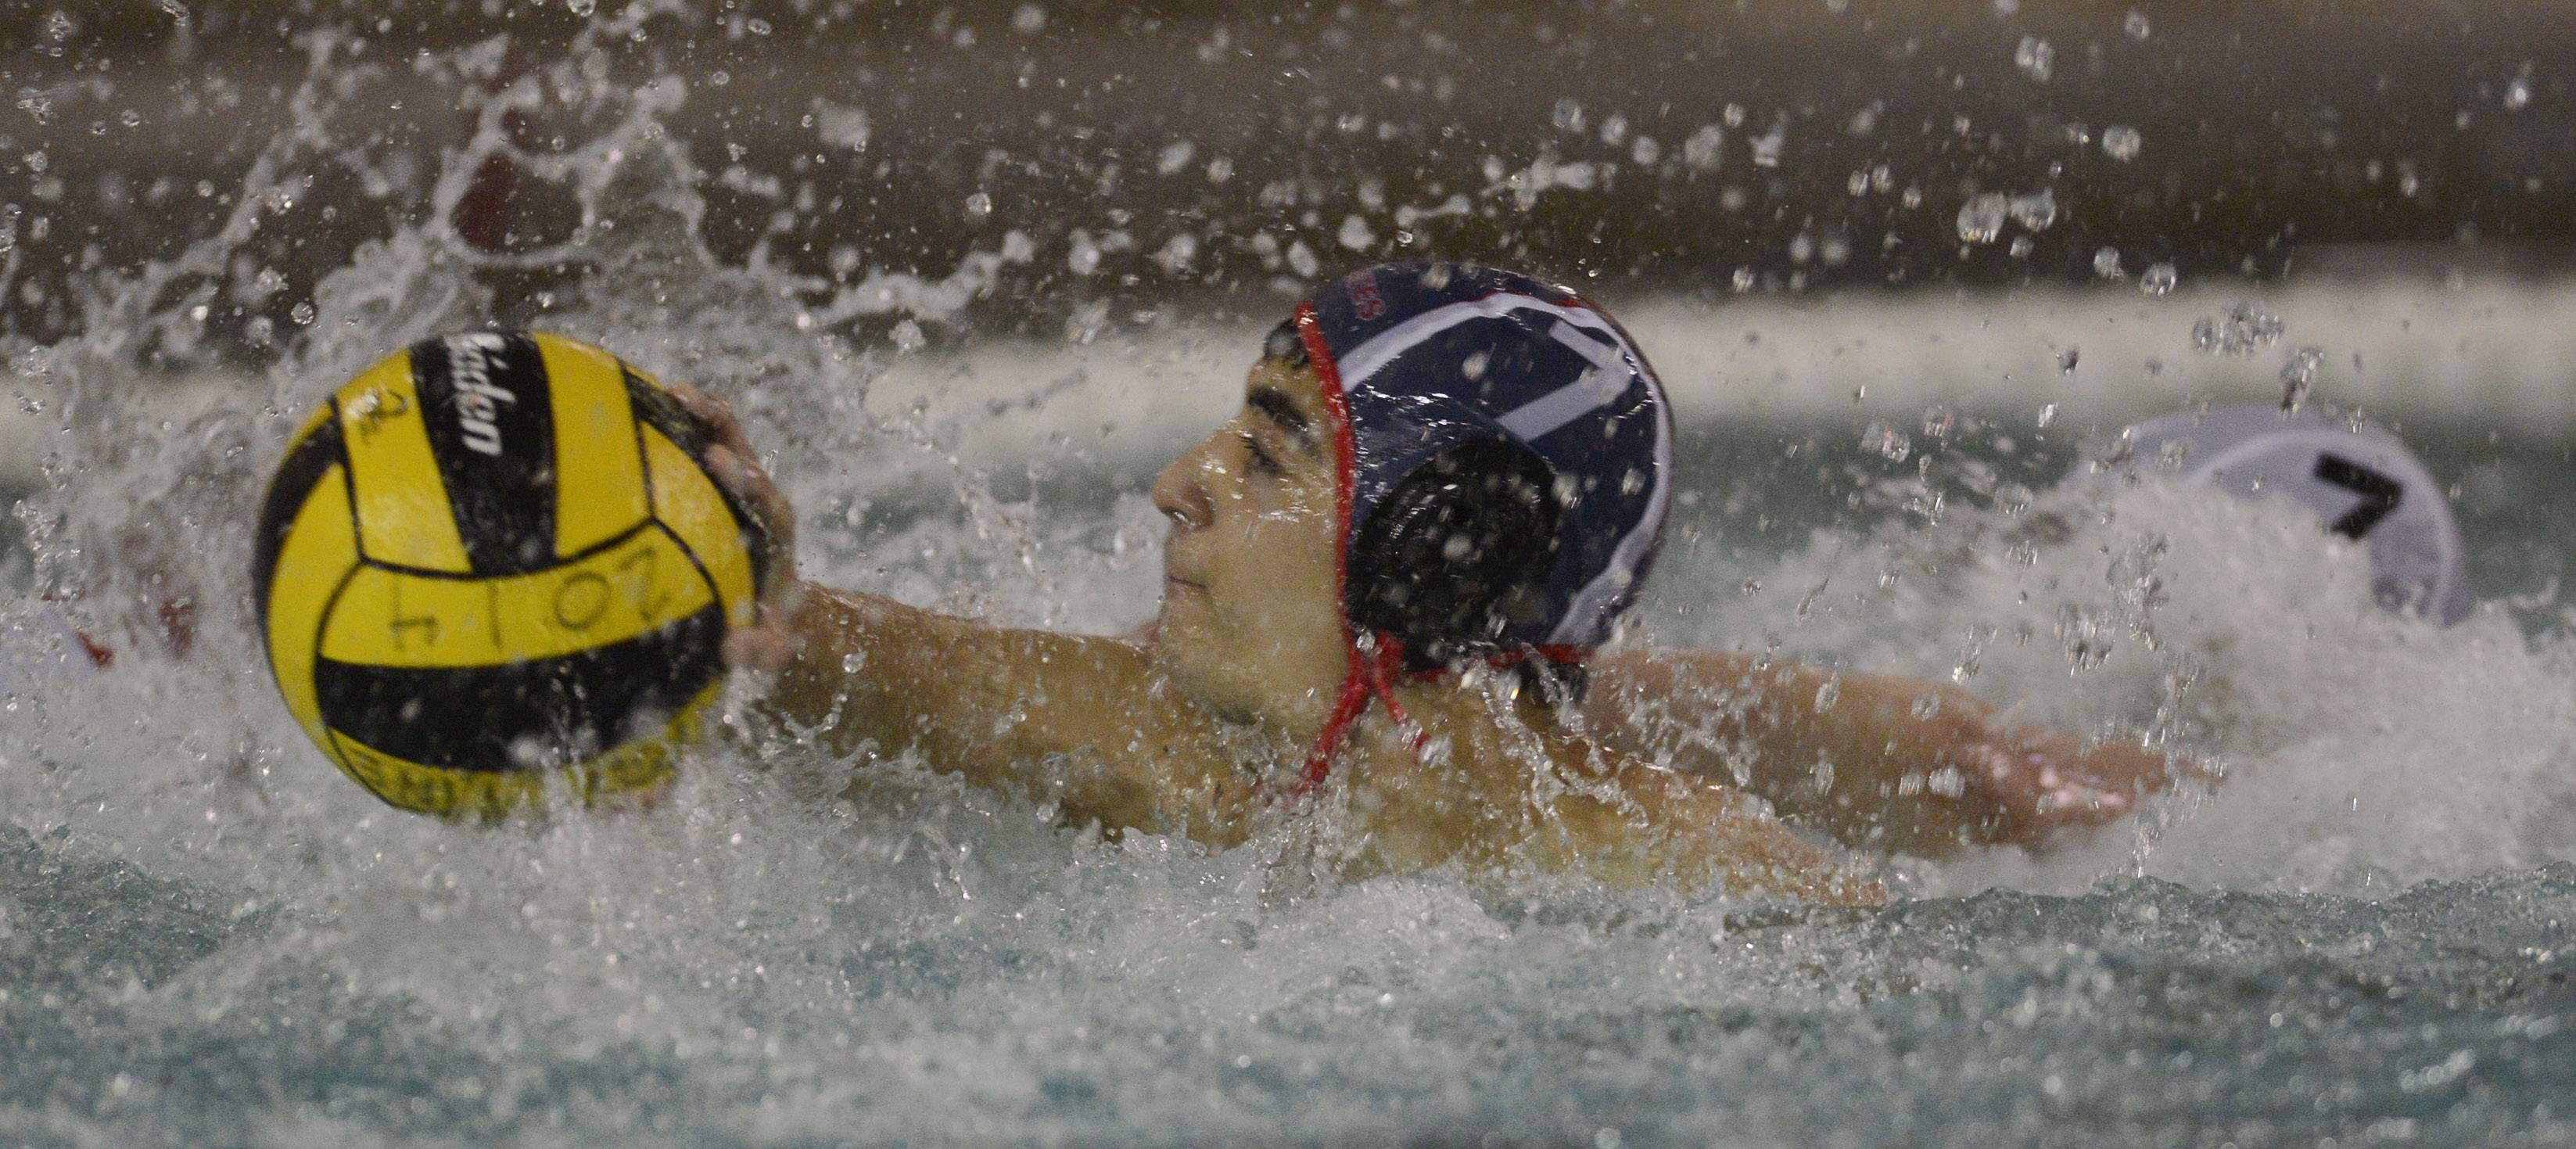 With the flick of his wrist, Palatine's Omar El Hoffi scores against McHenry during Saturday's water polo tournament at Palatine.